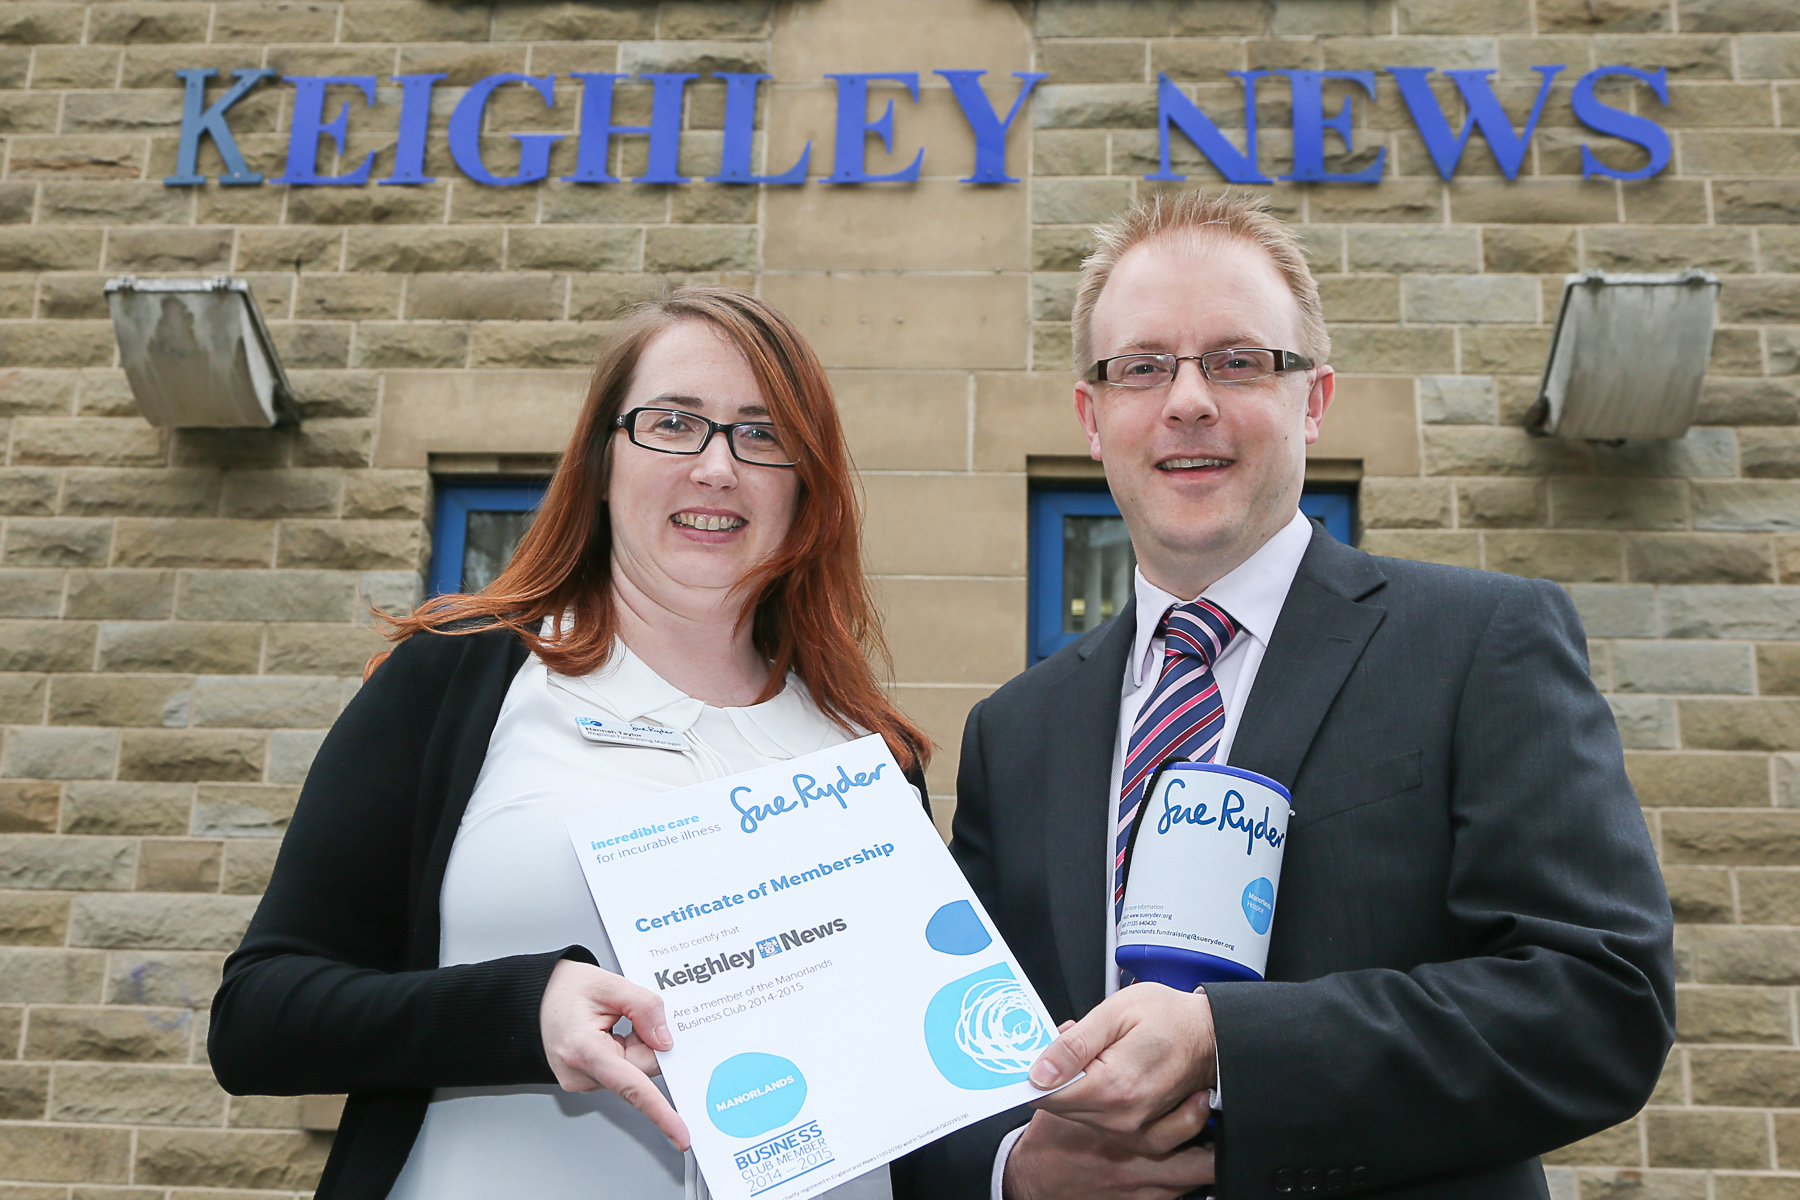 Sue Ryder regional fundraising manager, Hannah Taylor, presents Keighley News editor Richard Parker with the first membership certificate for the Manorlands Business Club